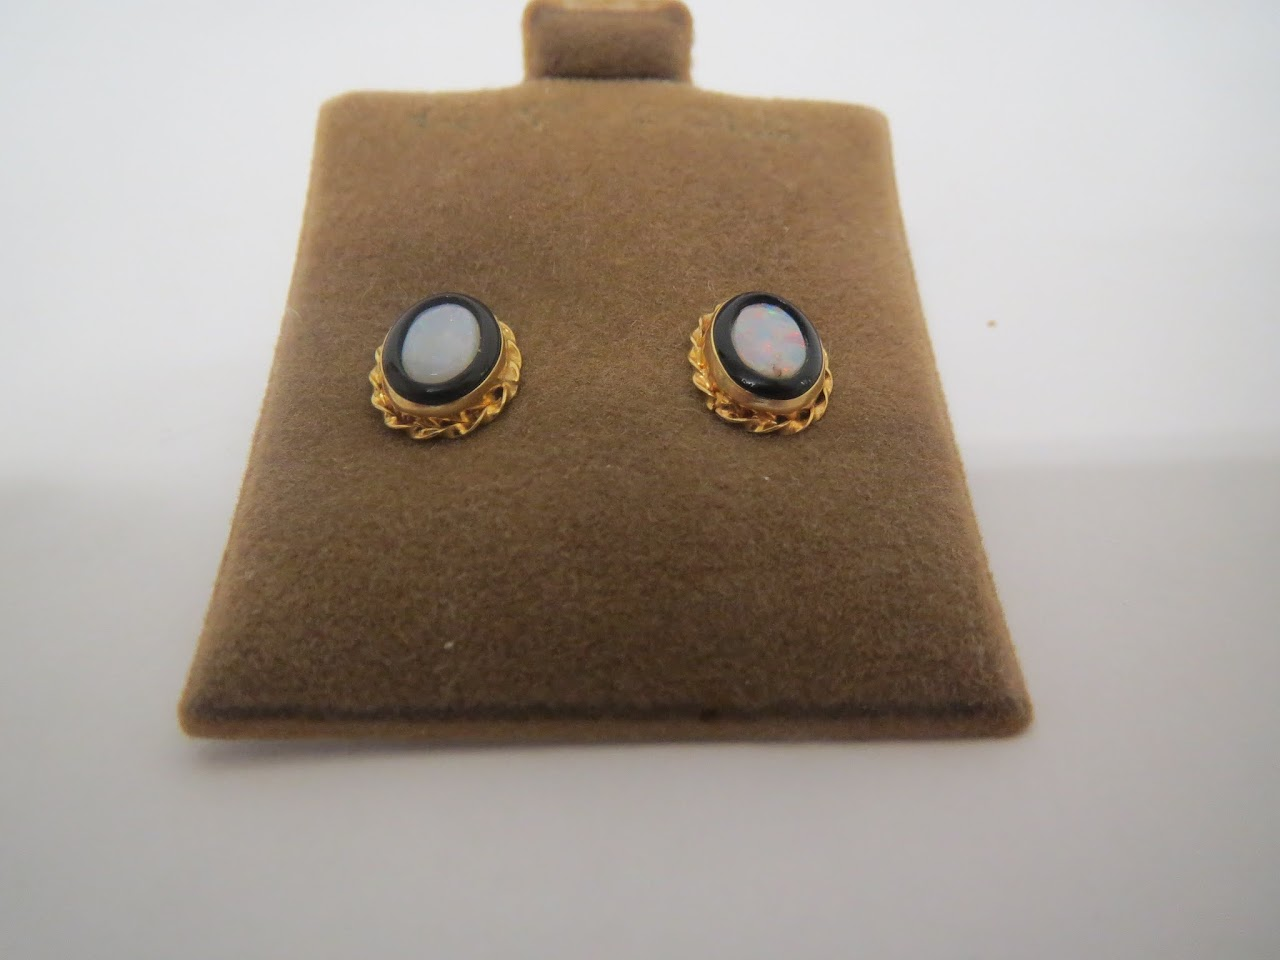 14K Gold, Opal & Onyx Stud Earrings